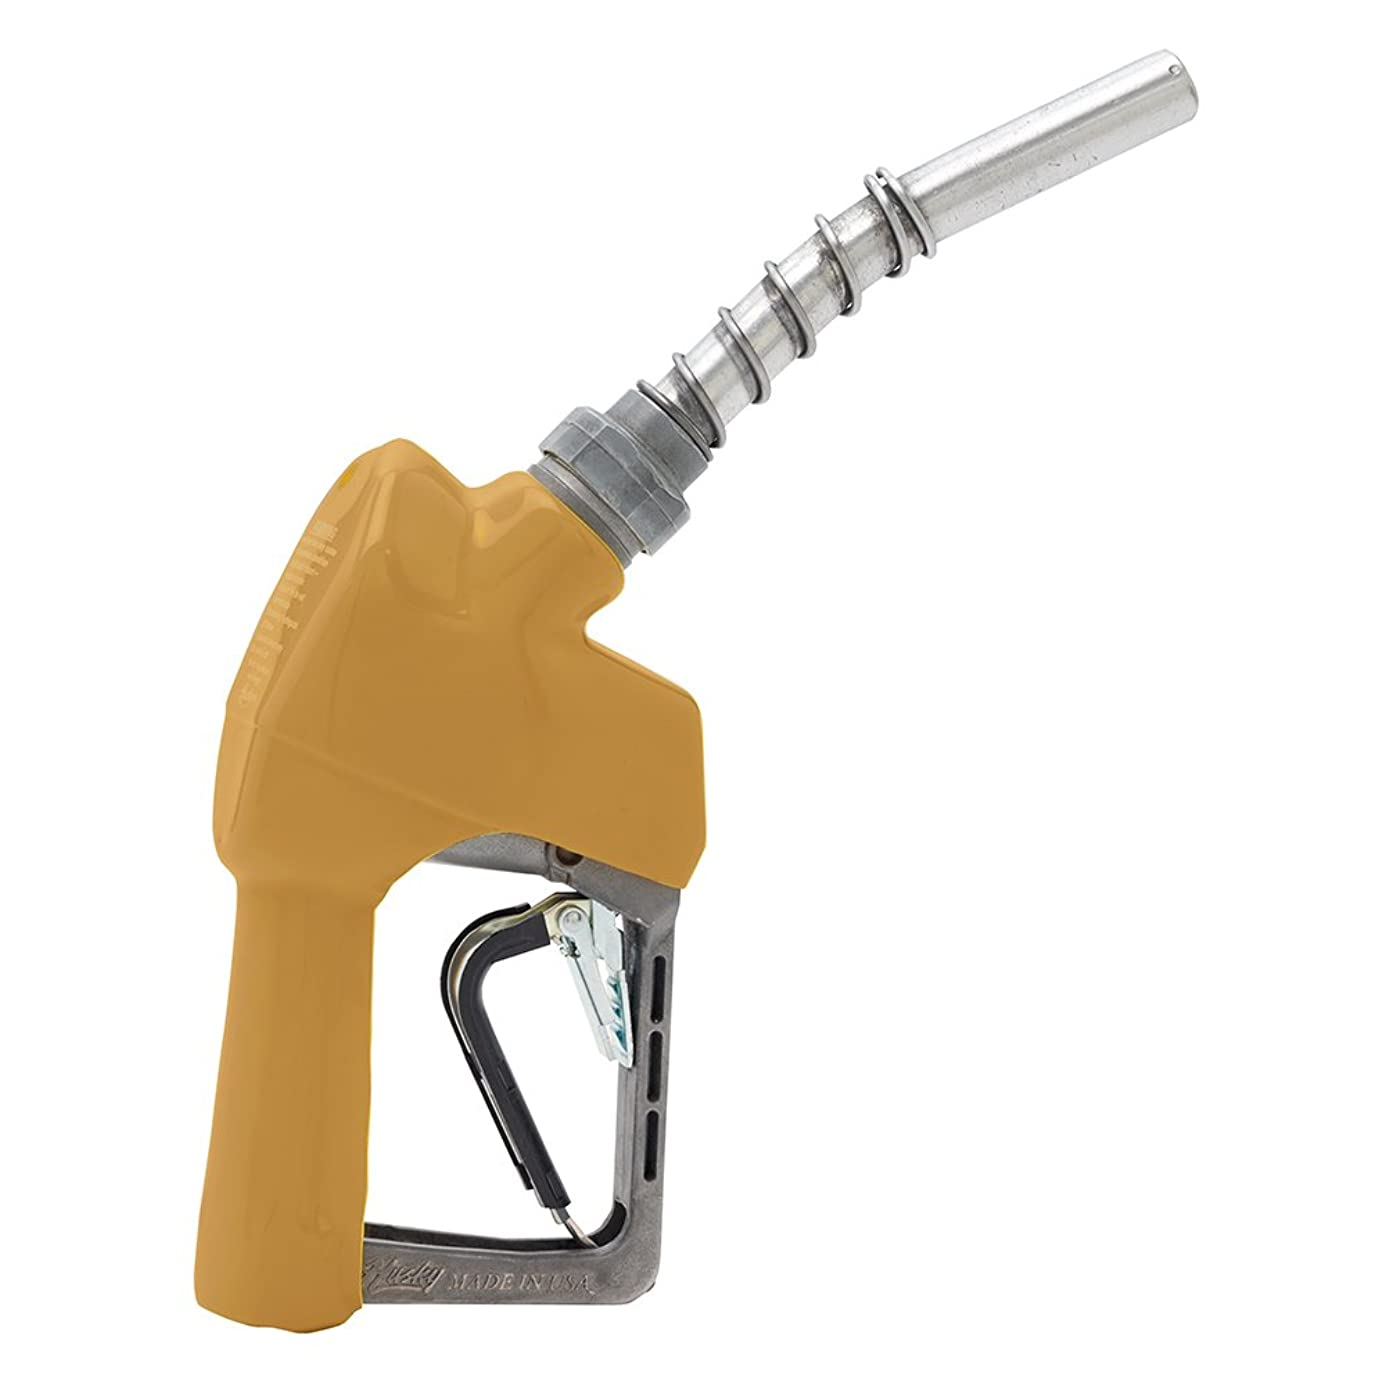 Husky 159403N-08 New X Light Duty Diesel Nozzle with Three Notch Hold Open Clip and Full Grip Guard ufu7678396